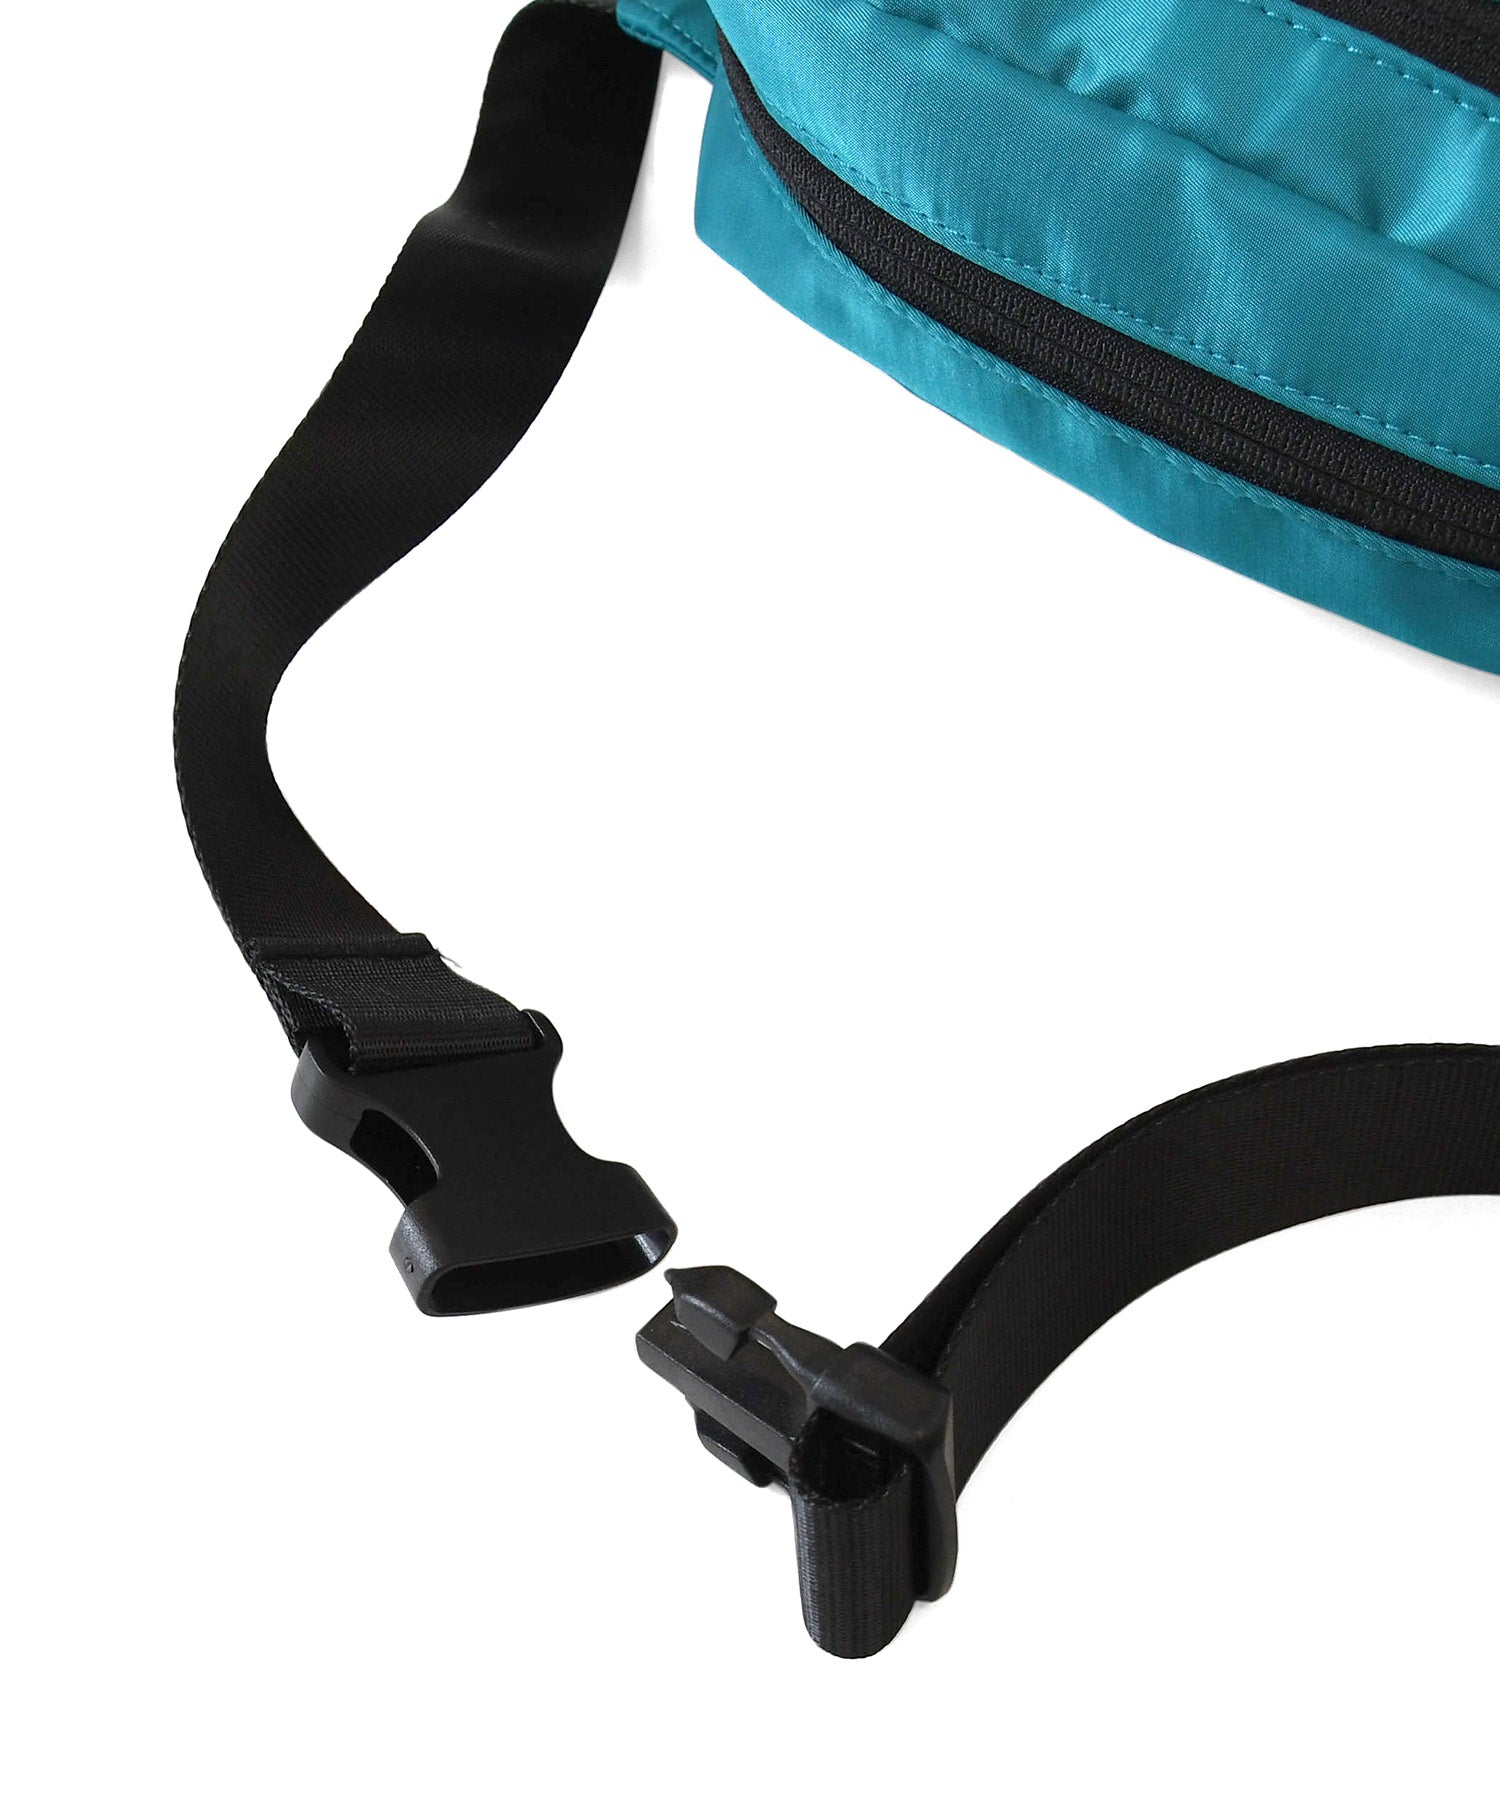 Lafayette HIGHEST HIP BAG LS201502 TURQUOISE